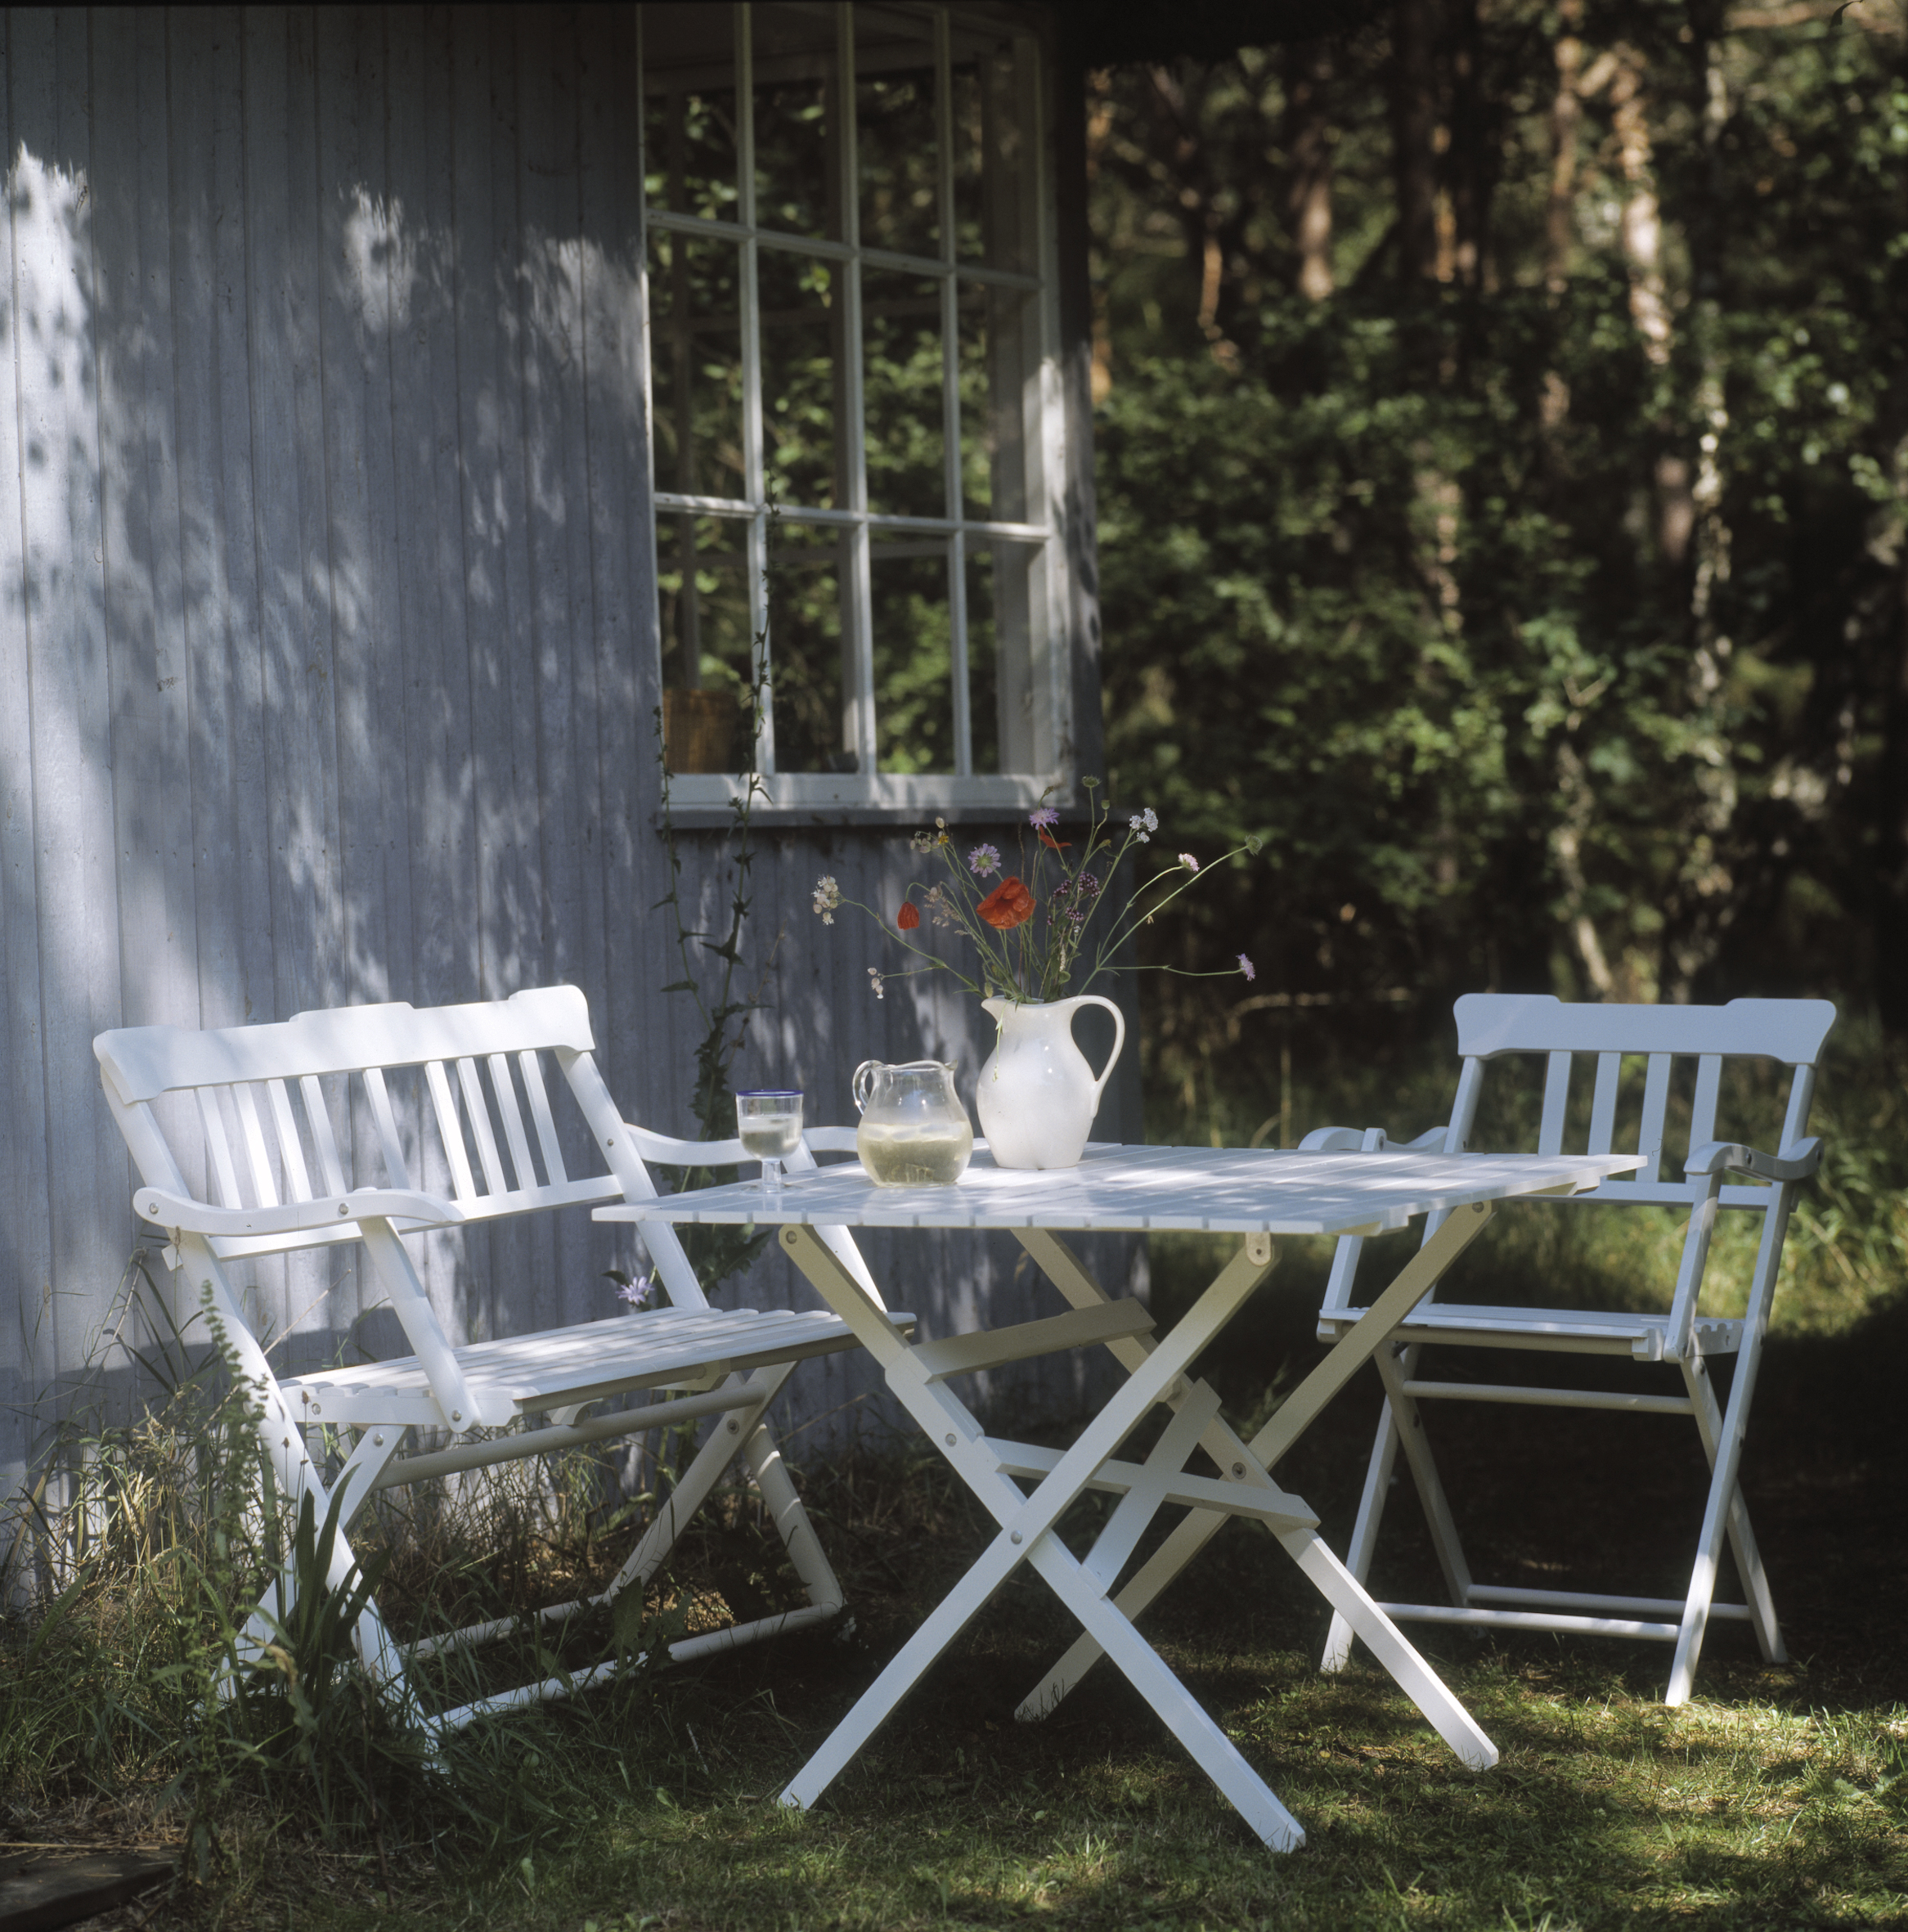 1d464300e288 Take your garden furniture out on Sunday | Your Danish Life